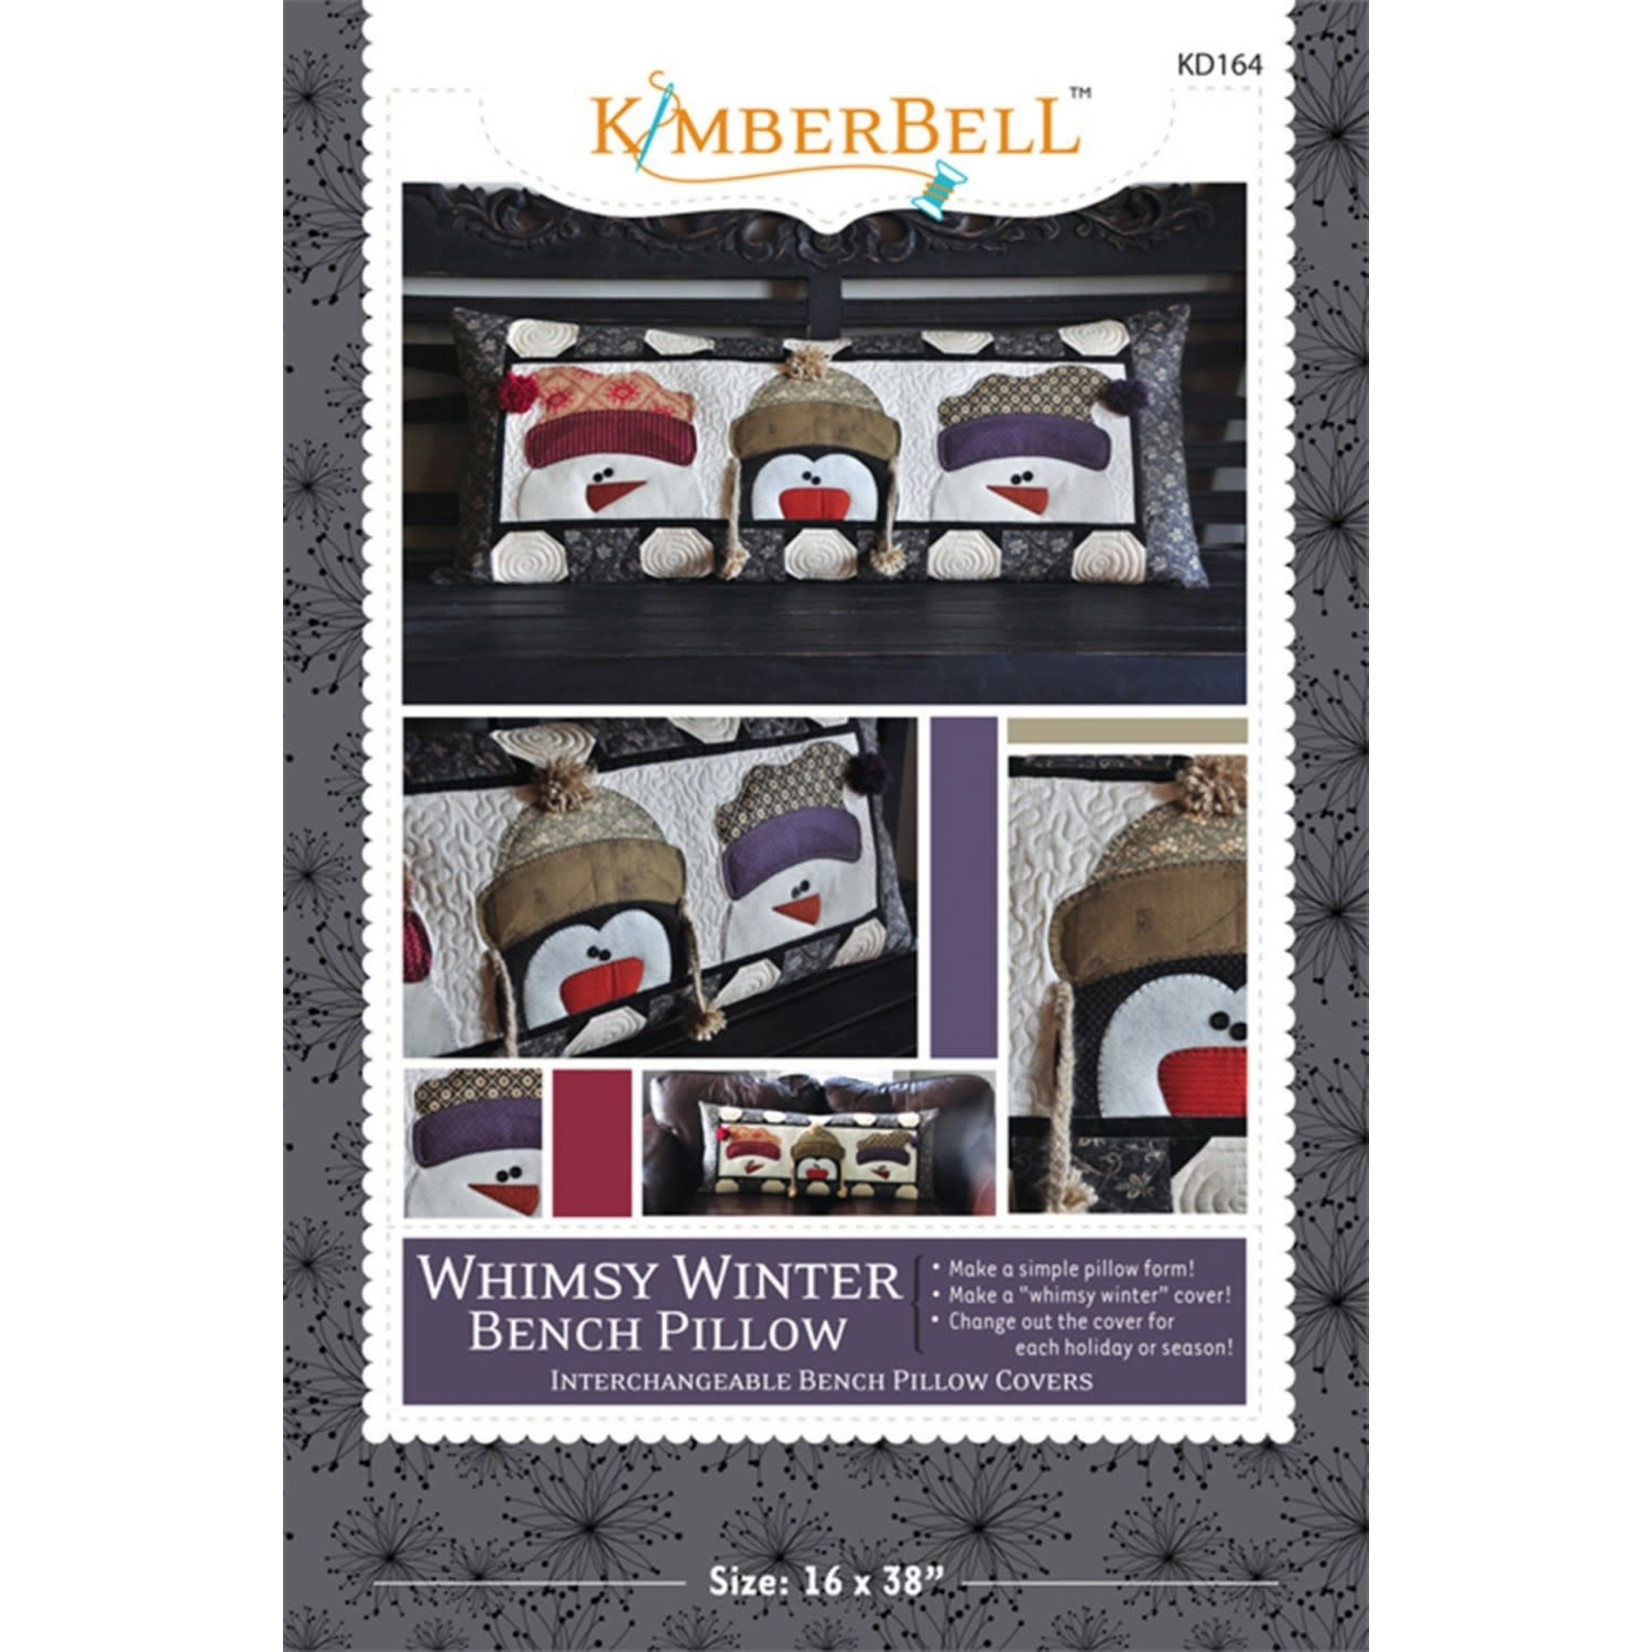 KIMBERBELL DESIGNS Whimsy Winter Bench Pillow Pattern